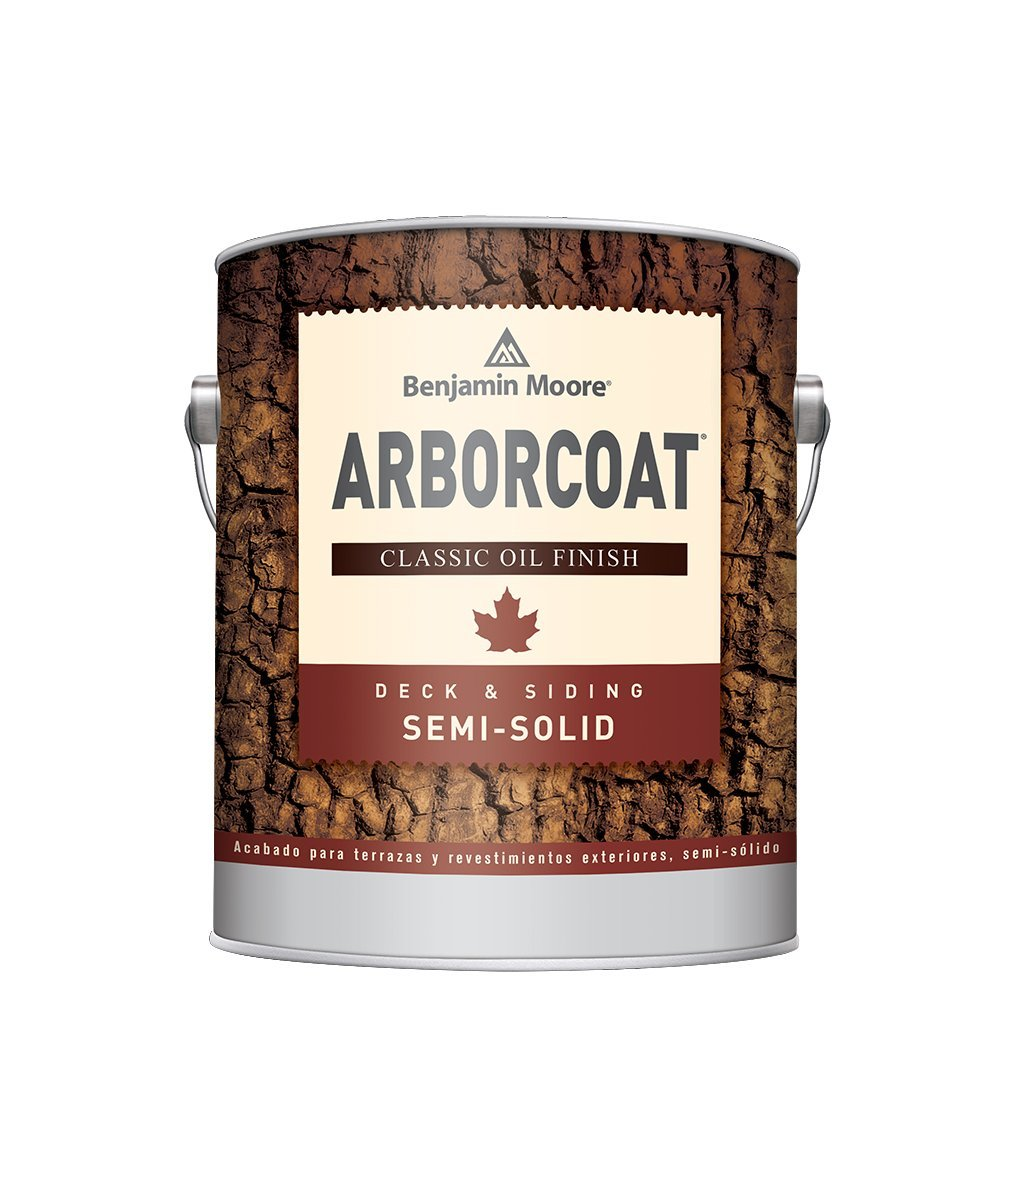 Arborcoat Semi-Solid Classic Oil Finish Wallauer Paint